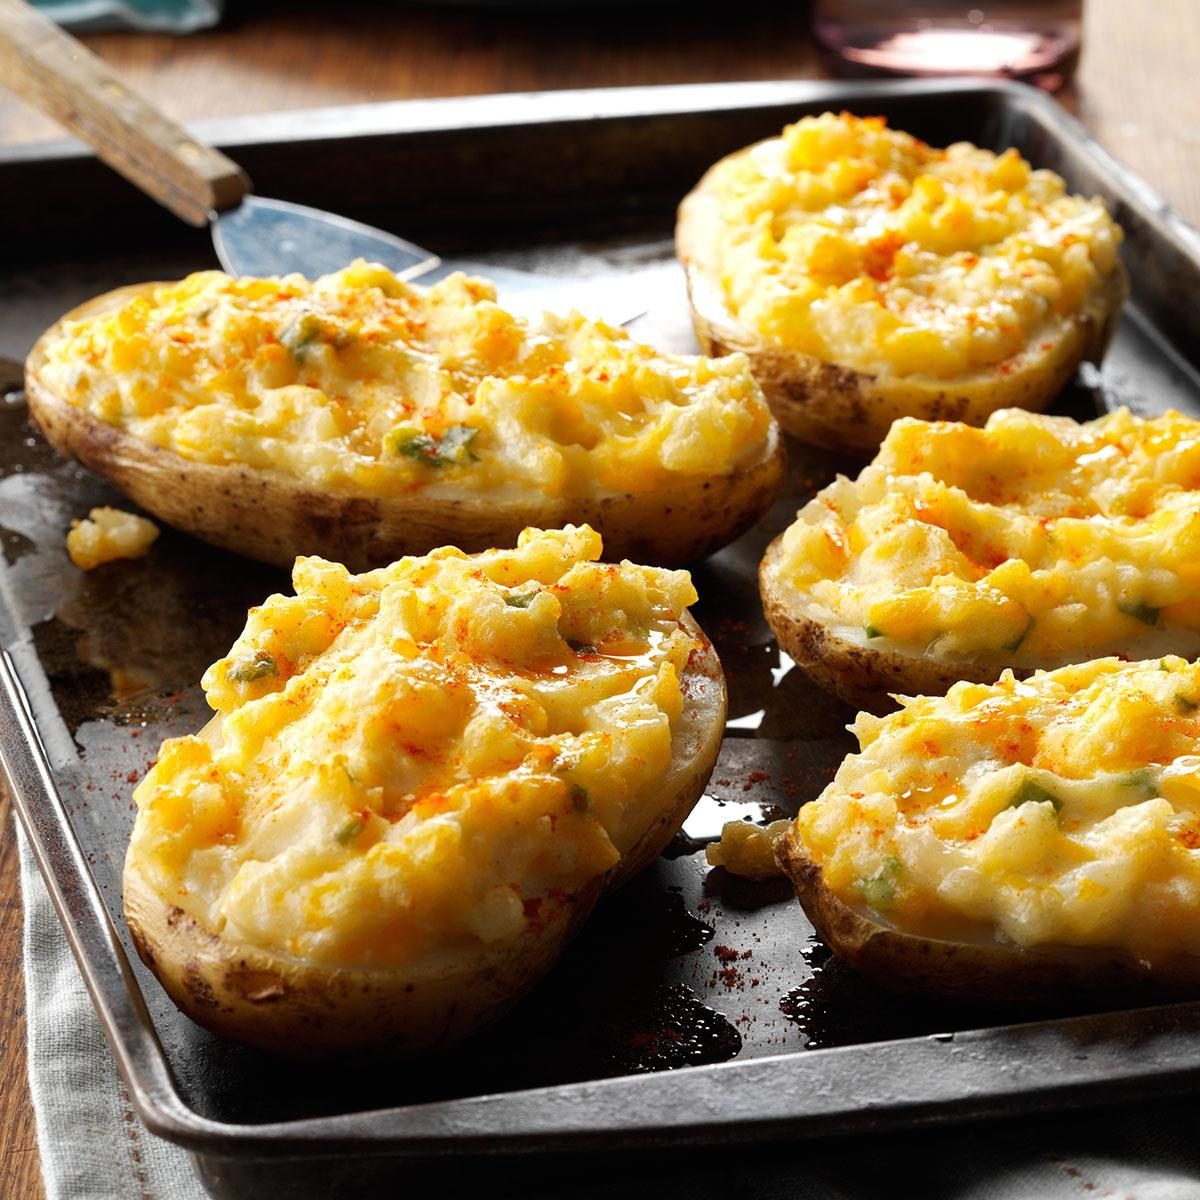 Cheesy Stuffed Baked Potatoes